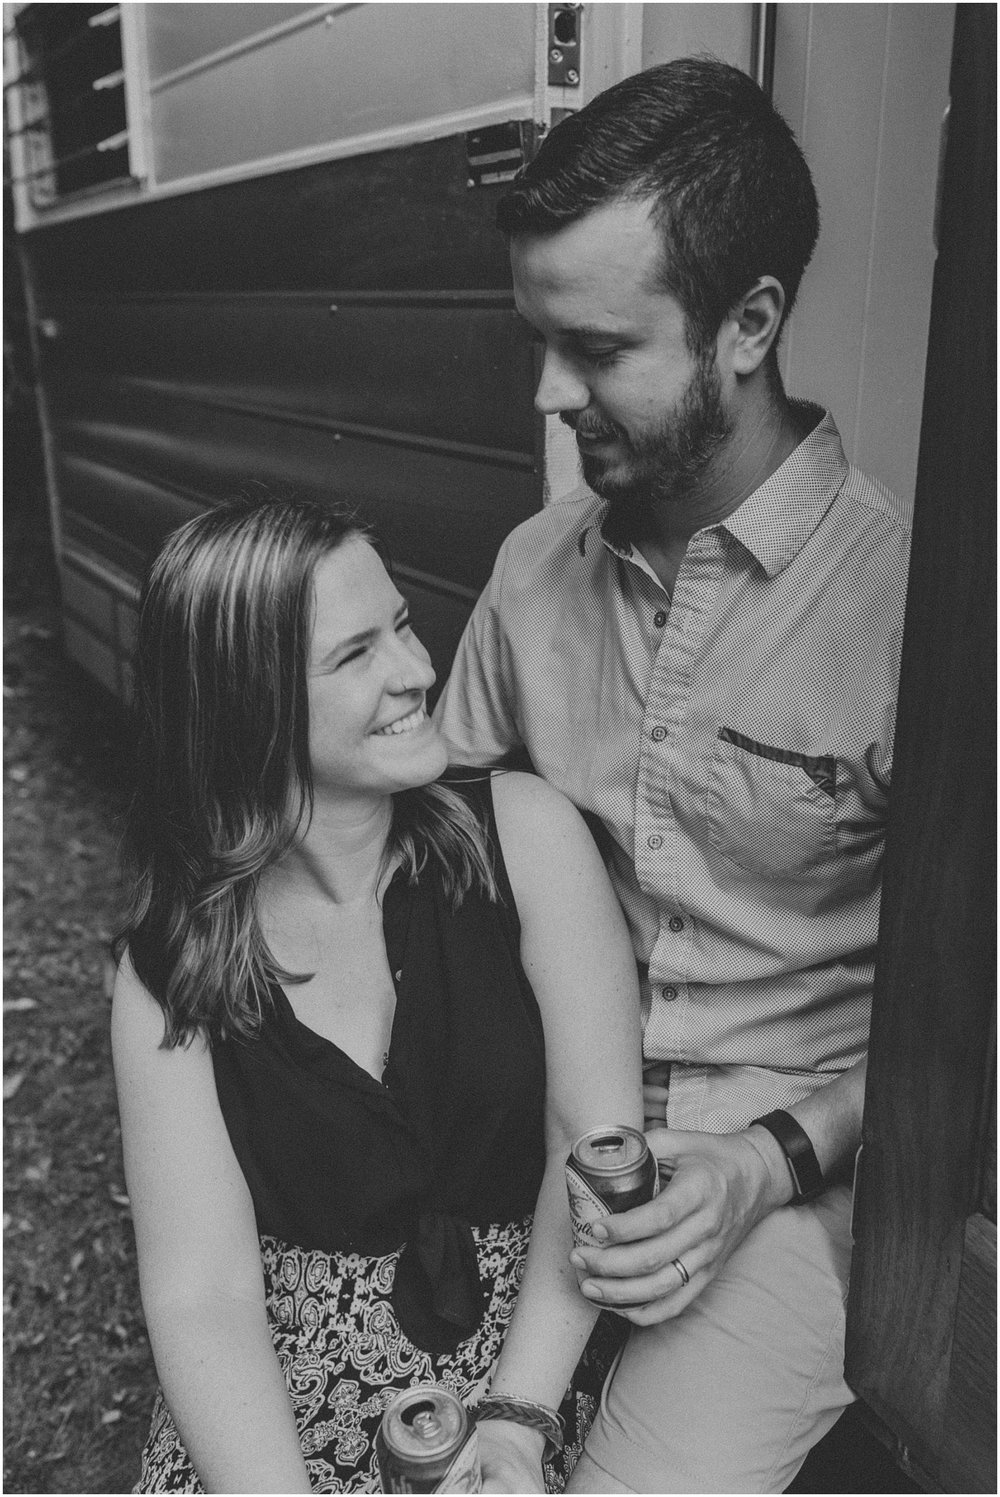 lifestyle-anniversary-engagement-photo session-rv-camping-road trip-vintage trailer-camping-outdoor photos_0222.jpg